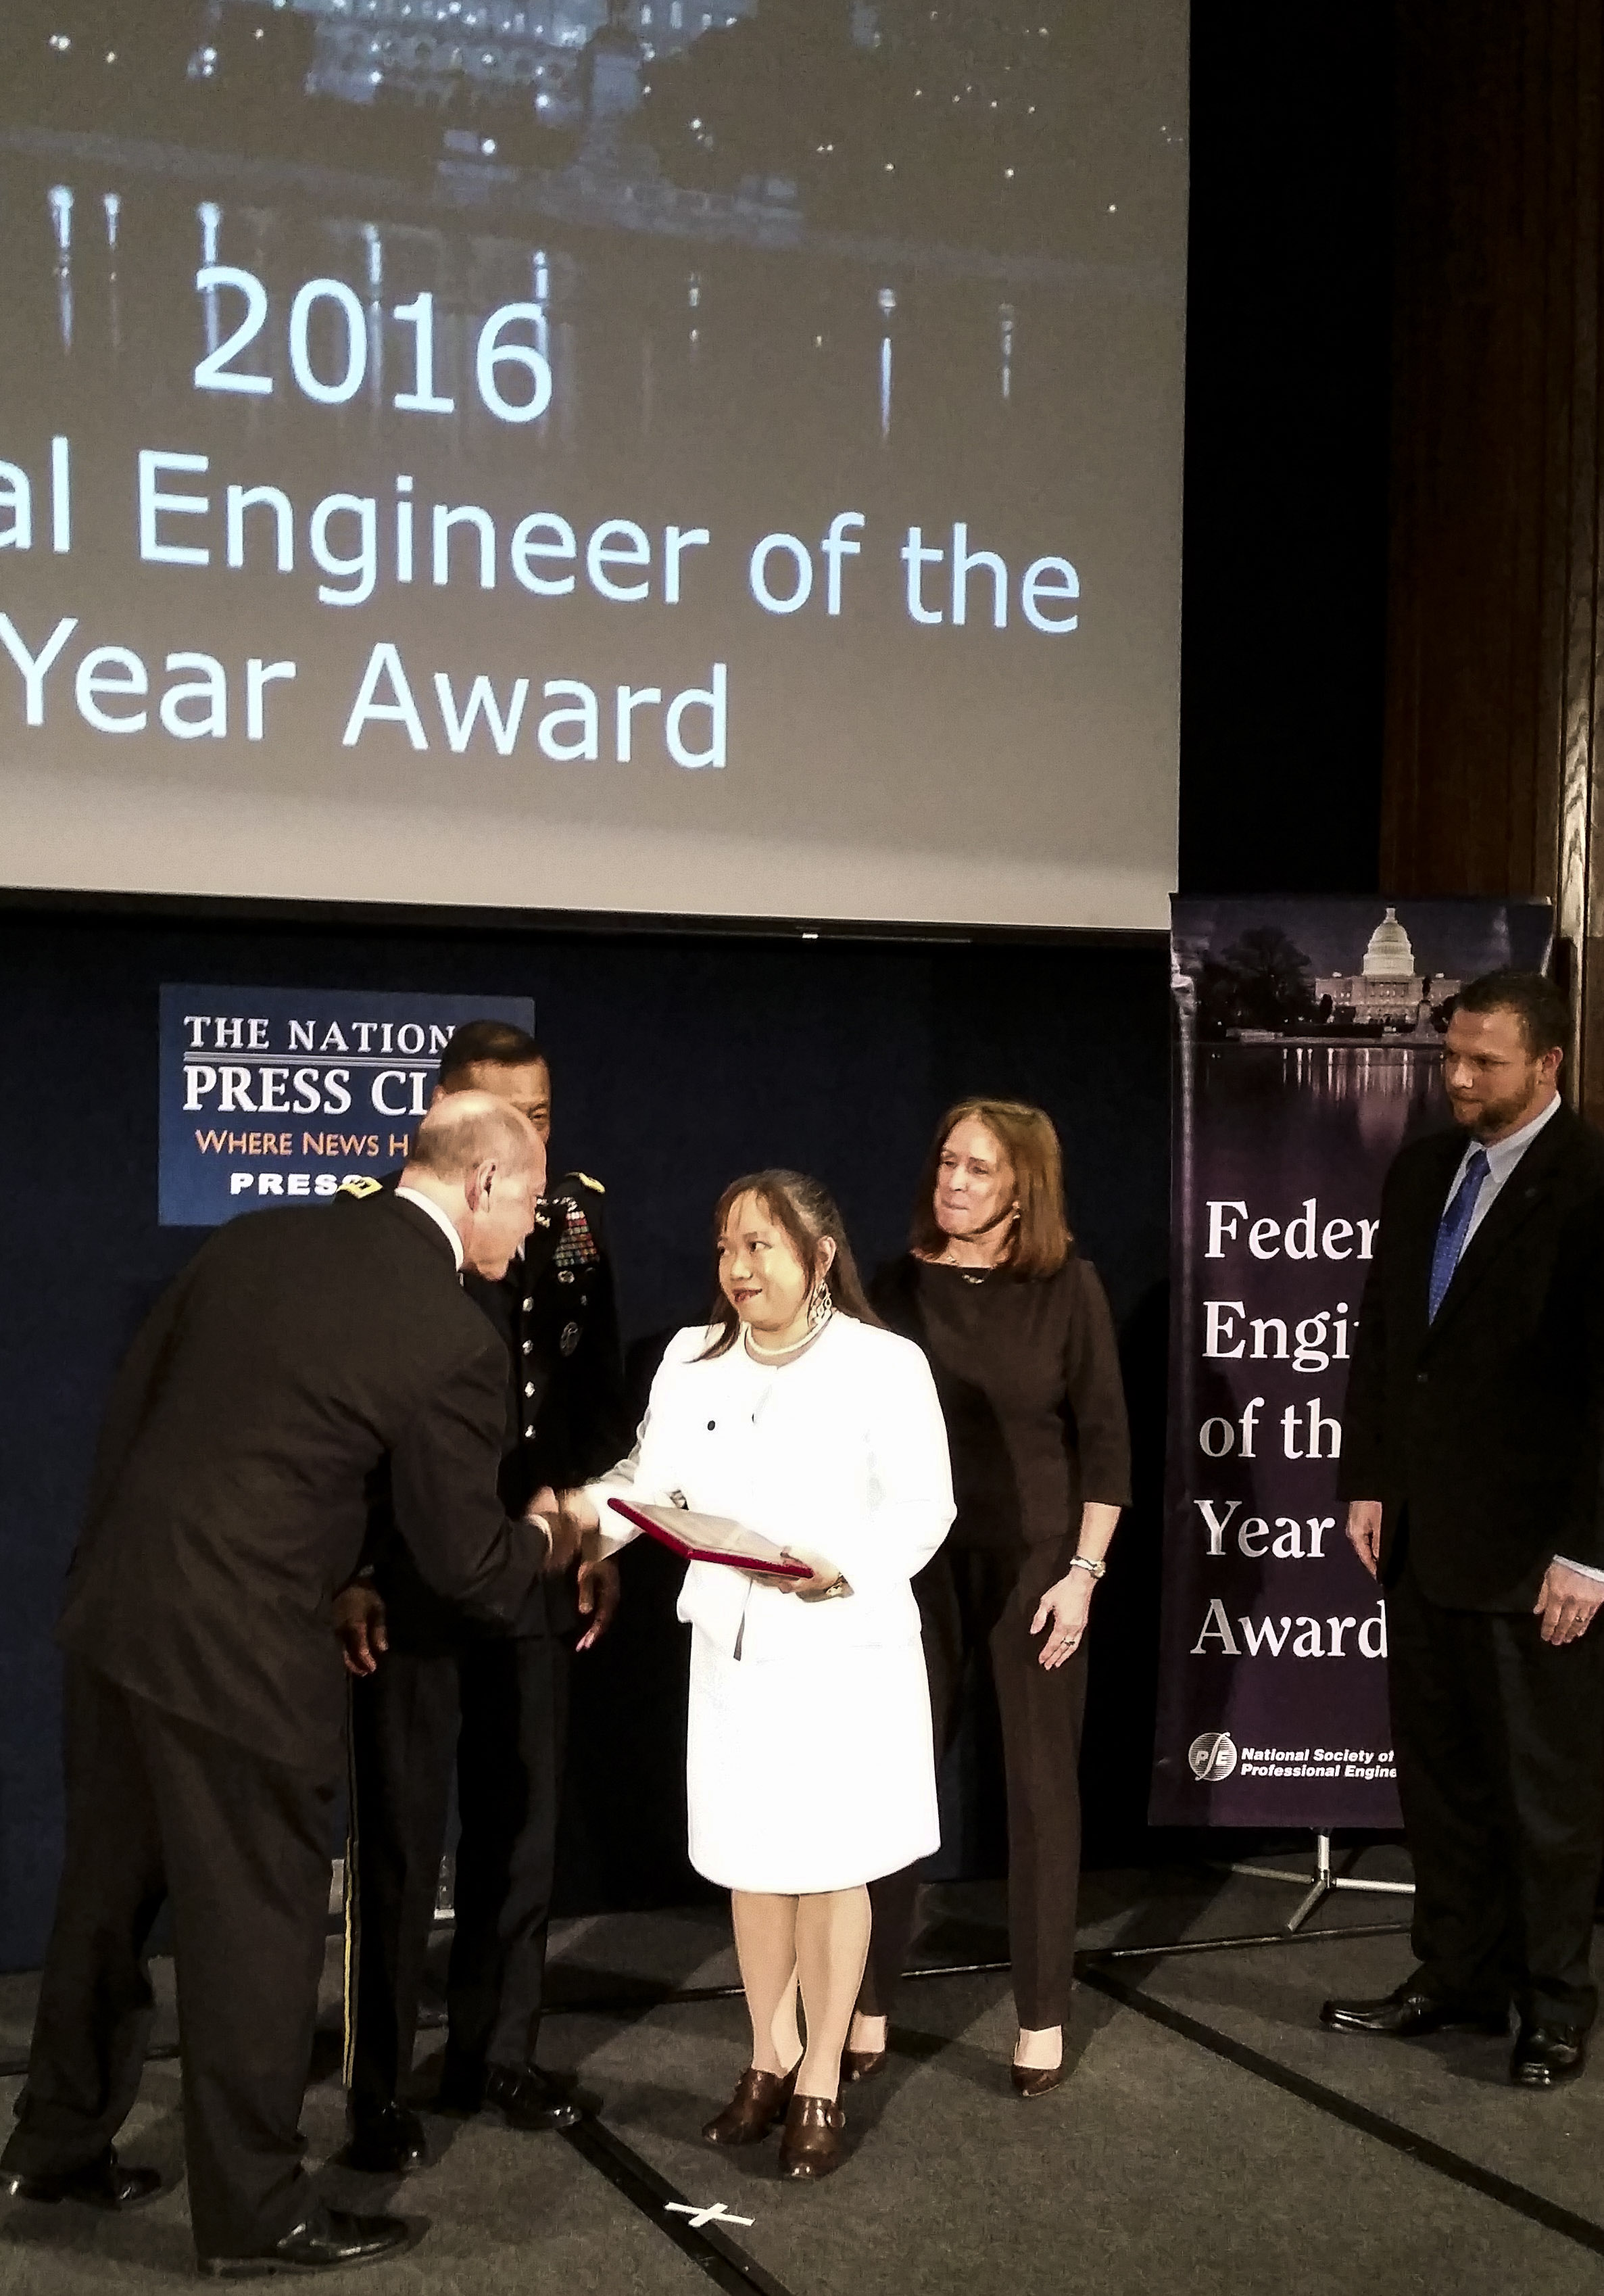 f8f6c3c8f2b15 District Engineer Honored at Federal Engineer of the Year Awards ...